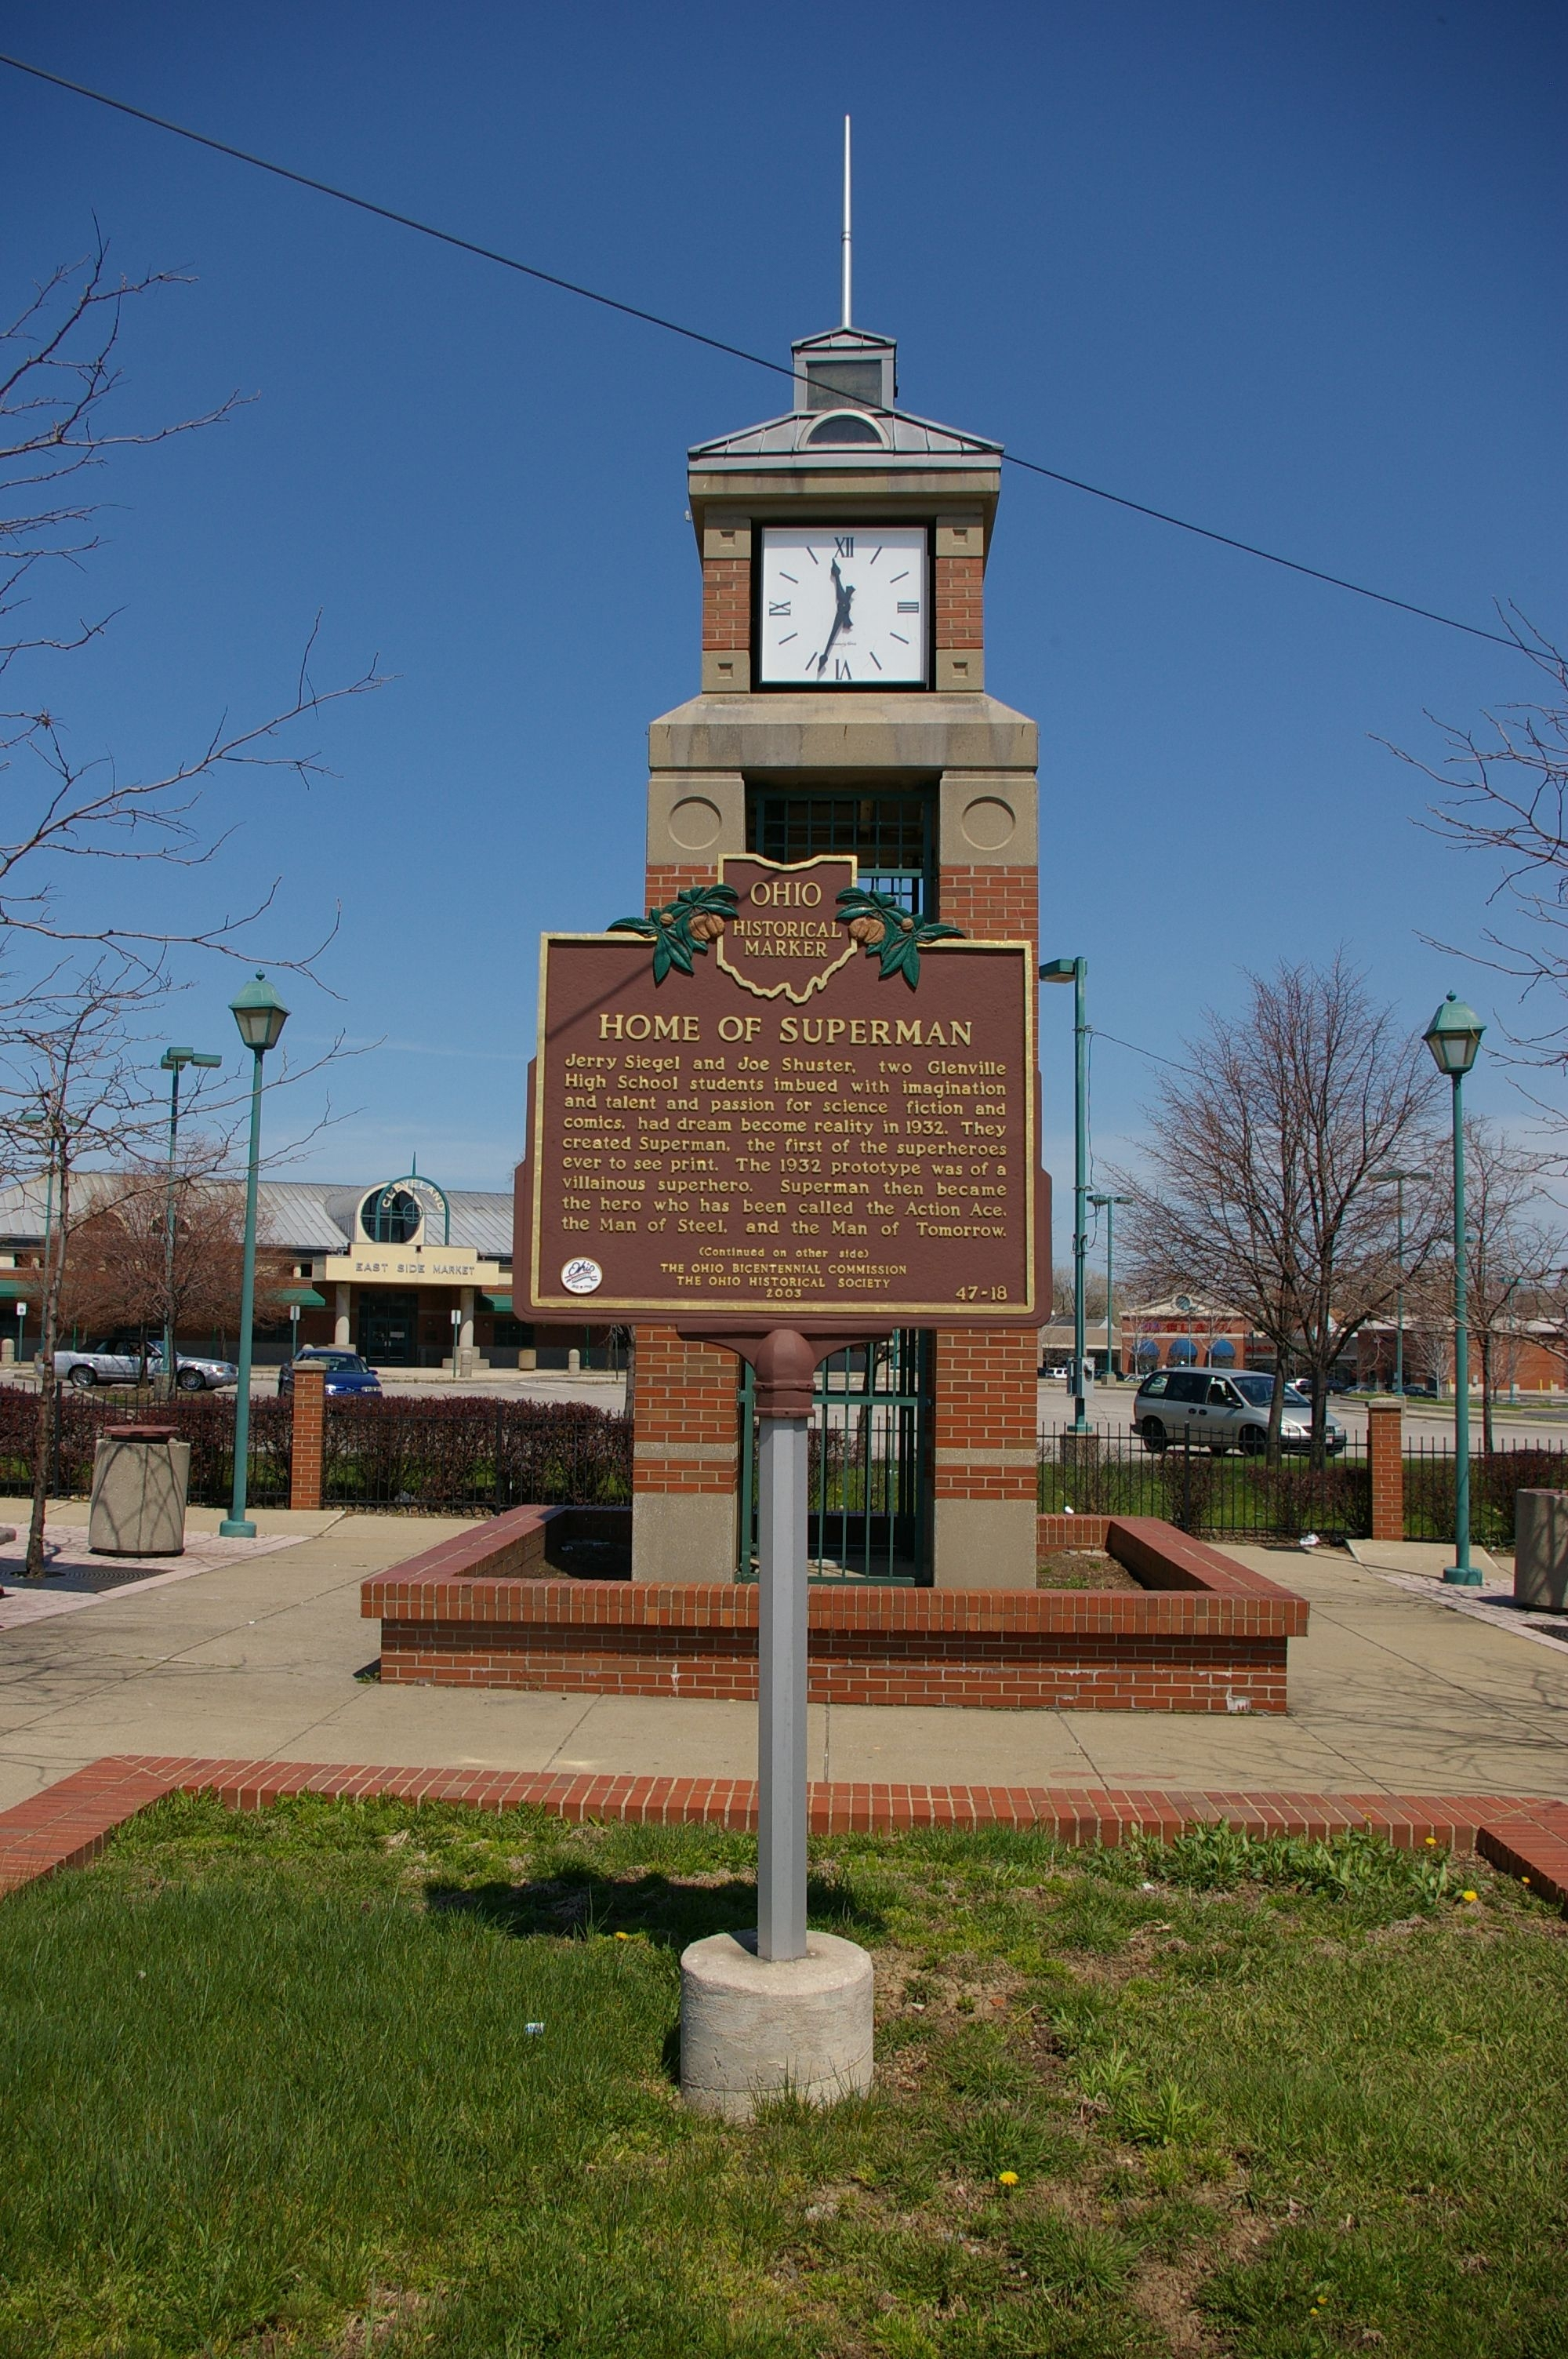 The marker is in front of a clocktower.